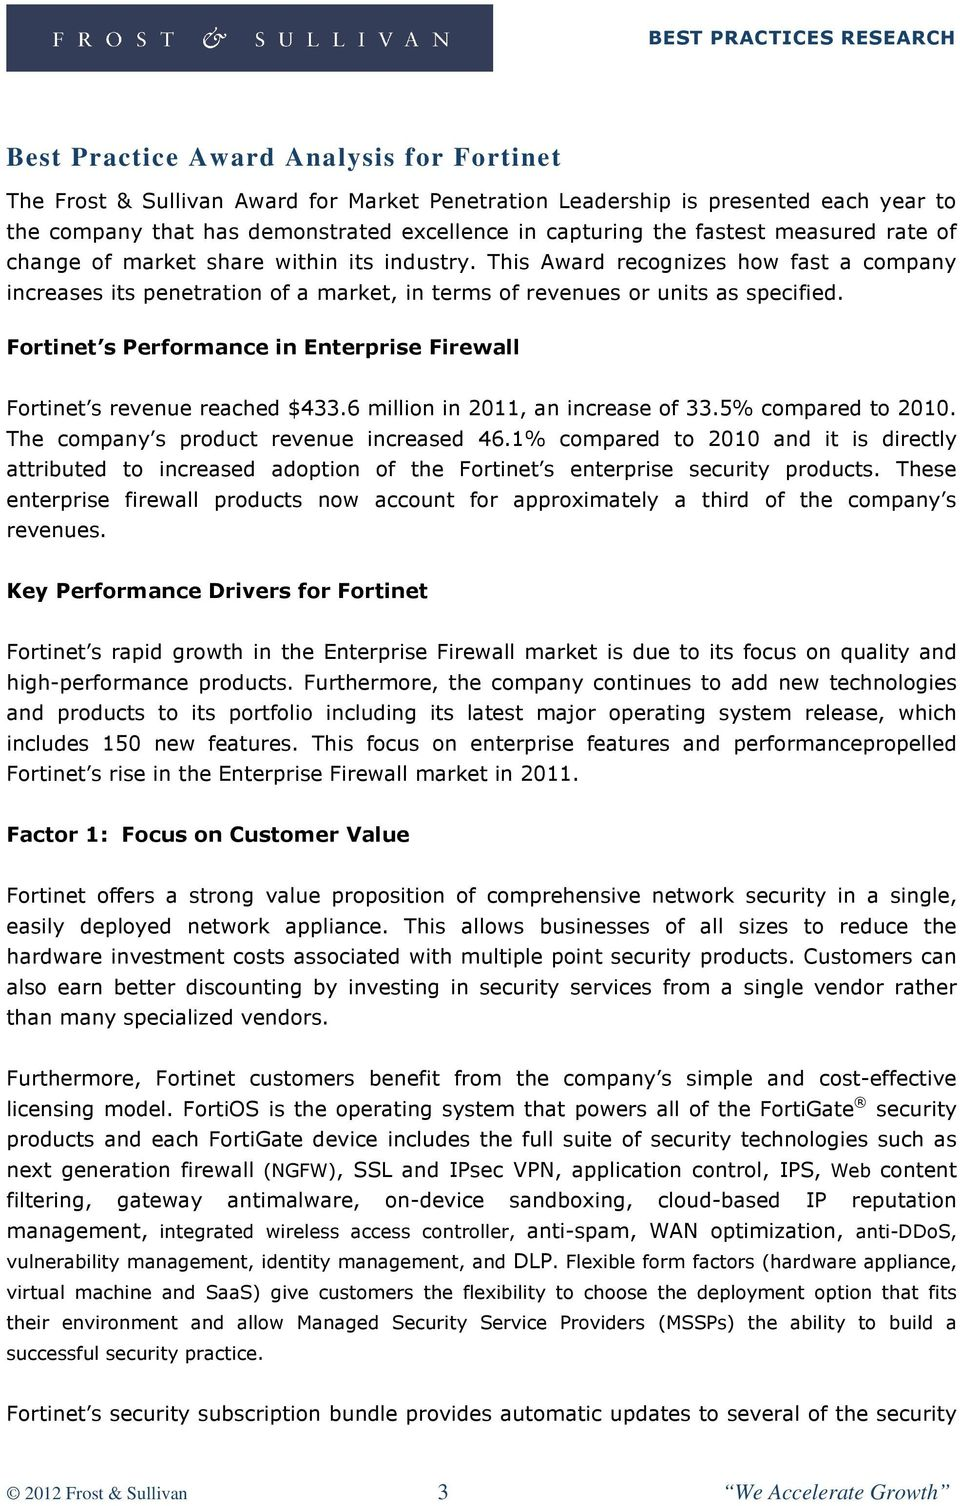 Fortinet s Performance in Enterprise Firewall Fortinet s revenue reached $433.6 million in 2011, an increase of 33.5% compared to 2010. The company s product revenue increased 46.